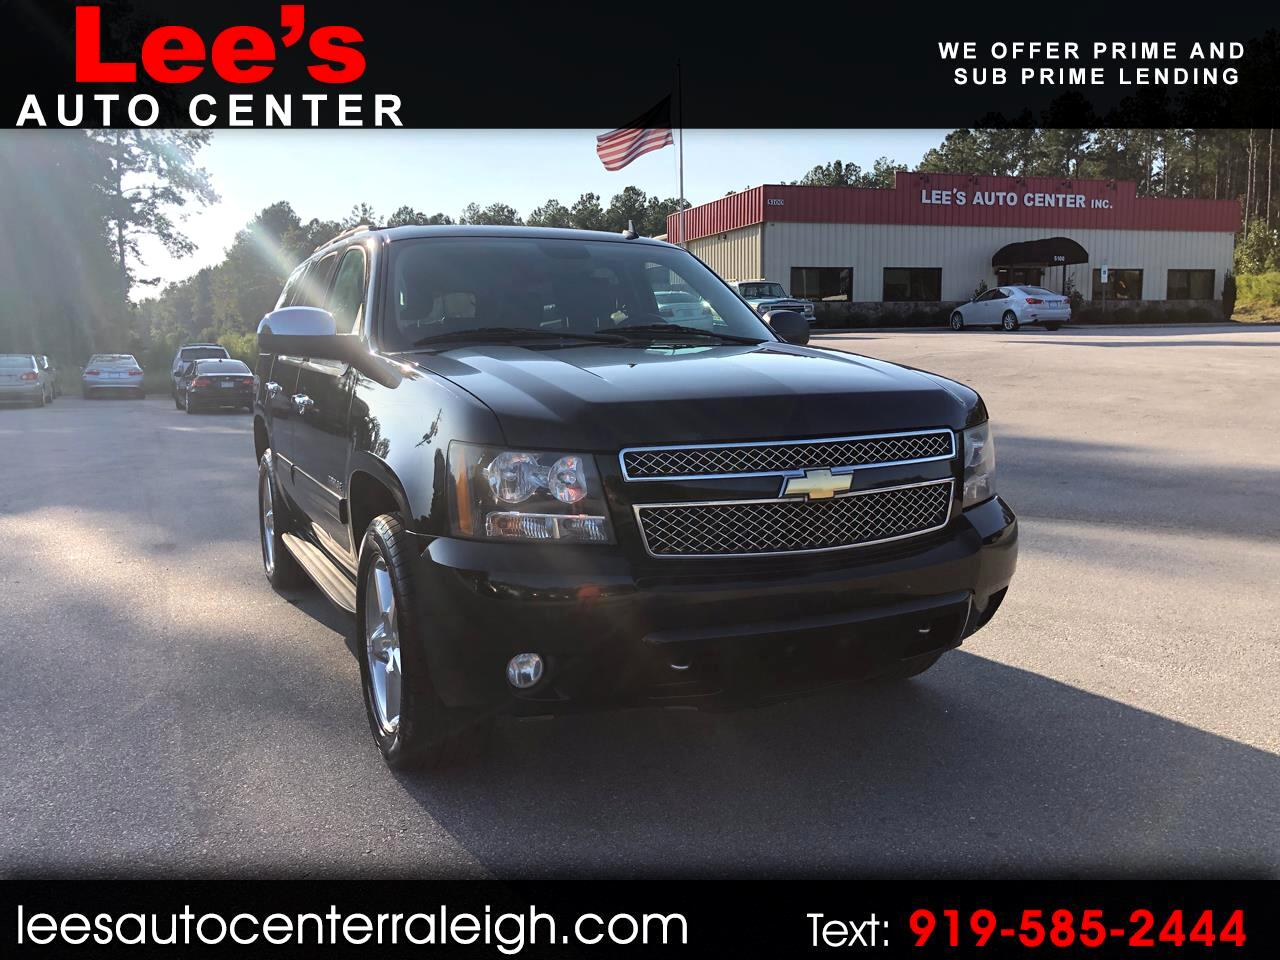 2011 Chevrolet Tahoe 4WD LT THIRD ROW SEATING, CARFAX 1 OWNER